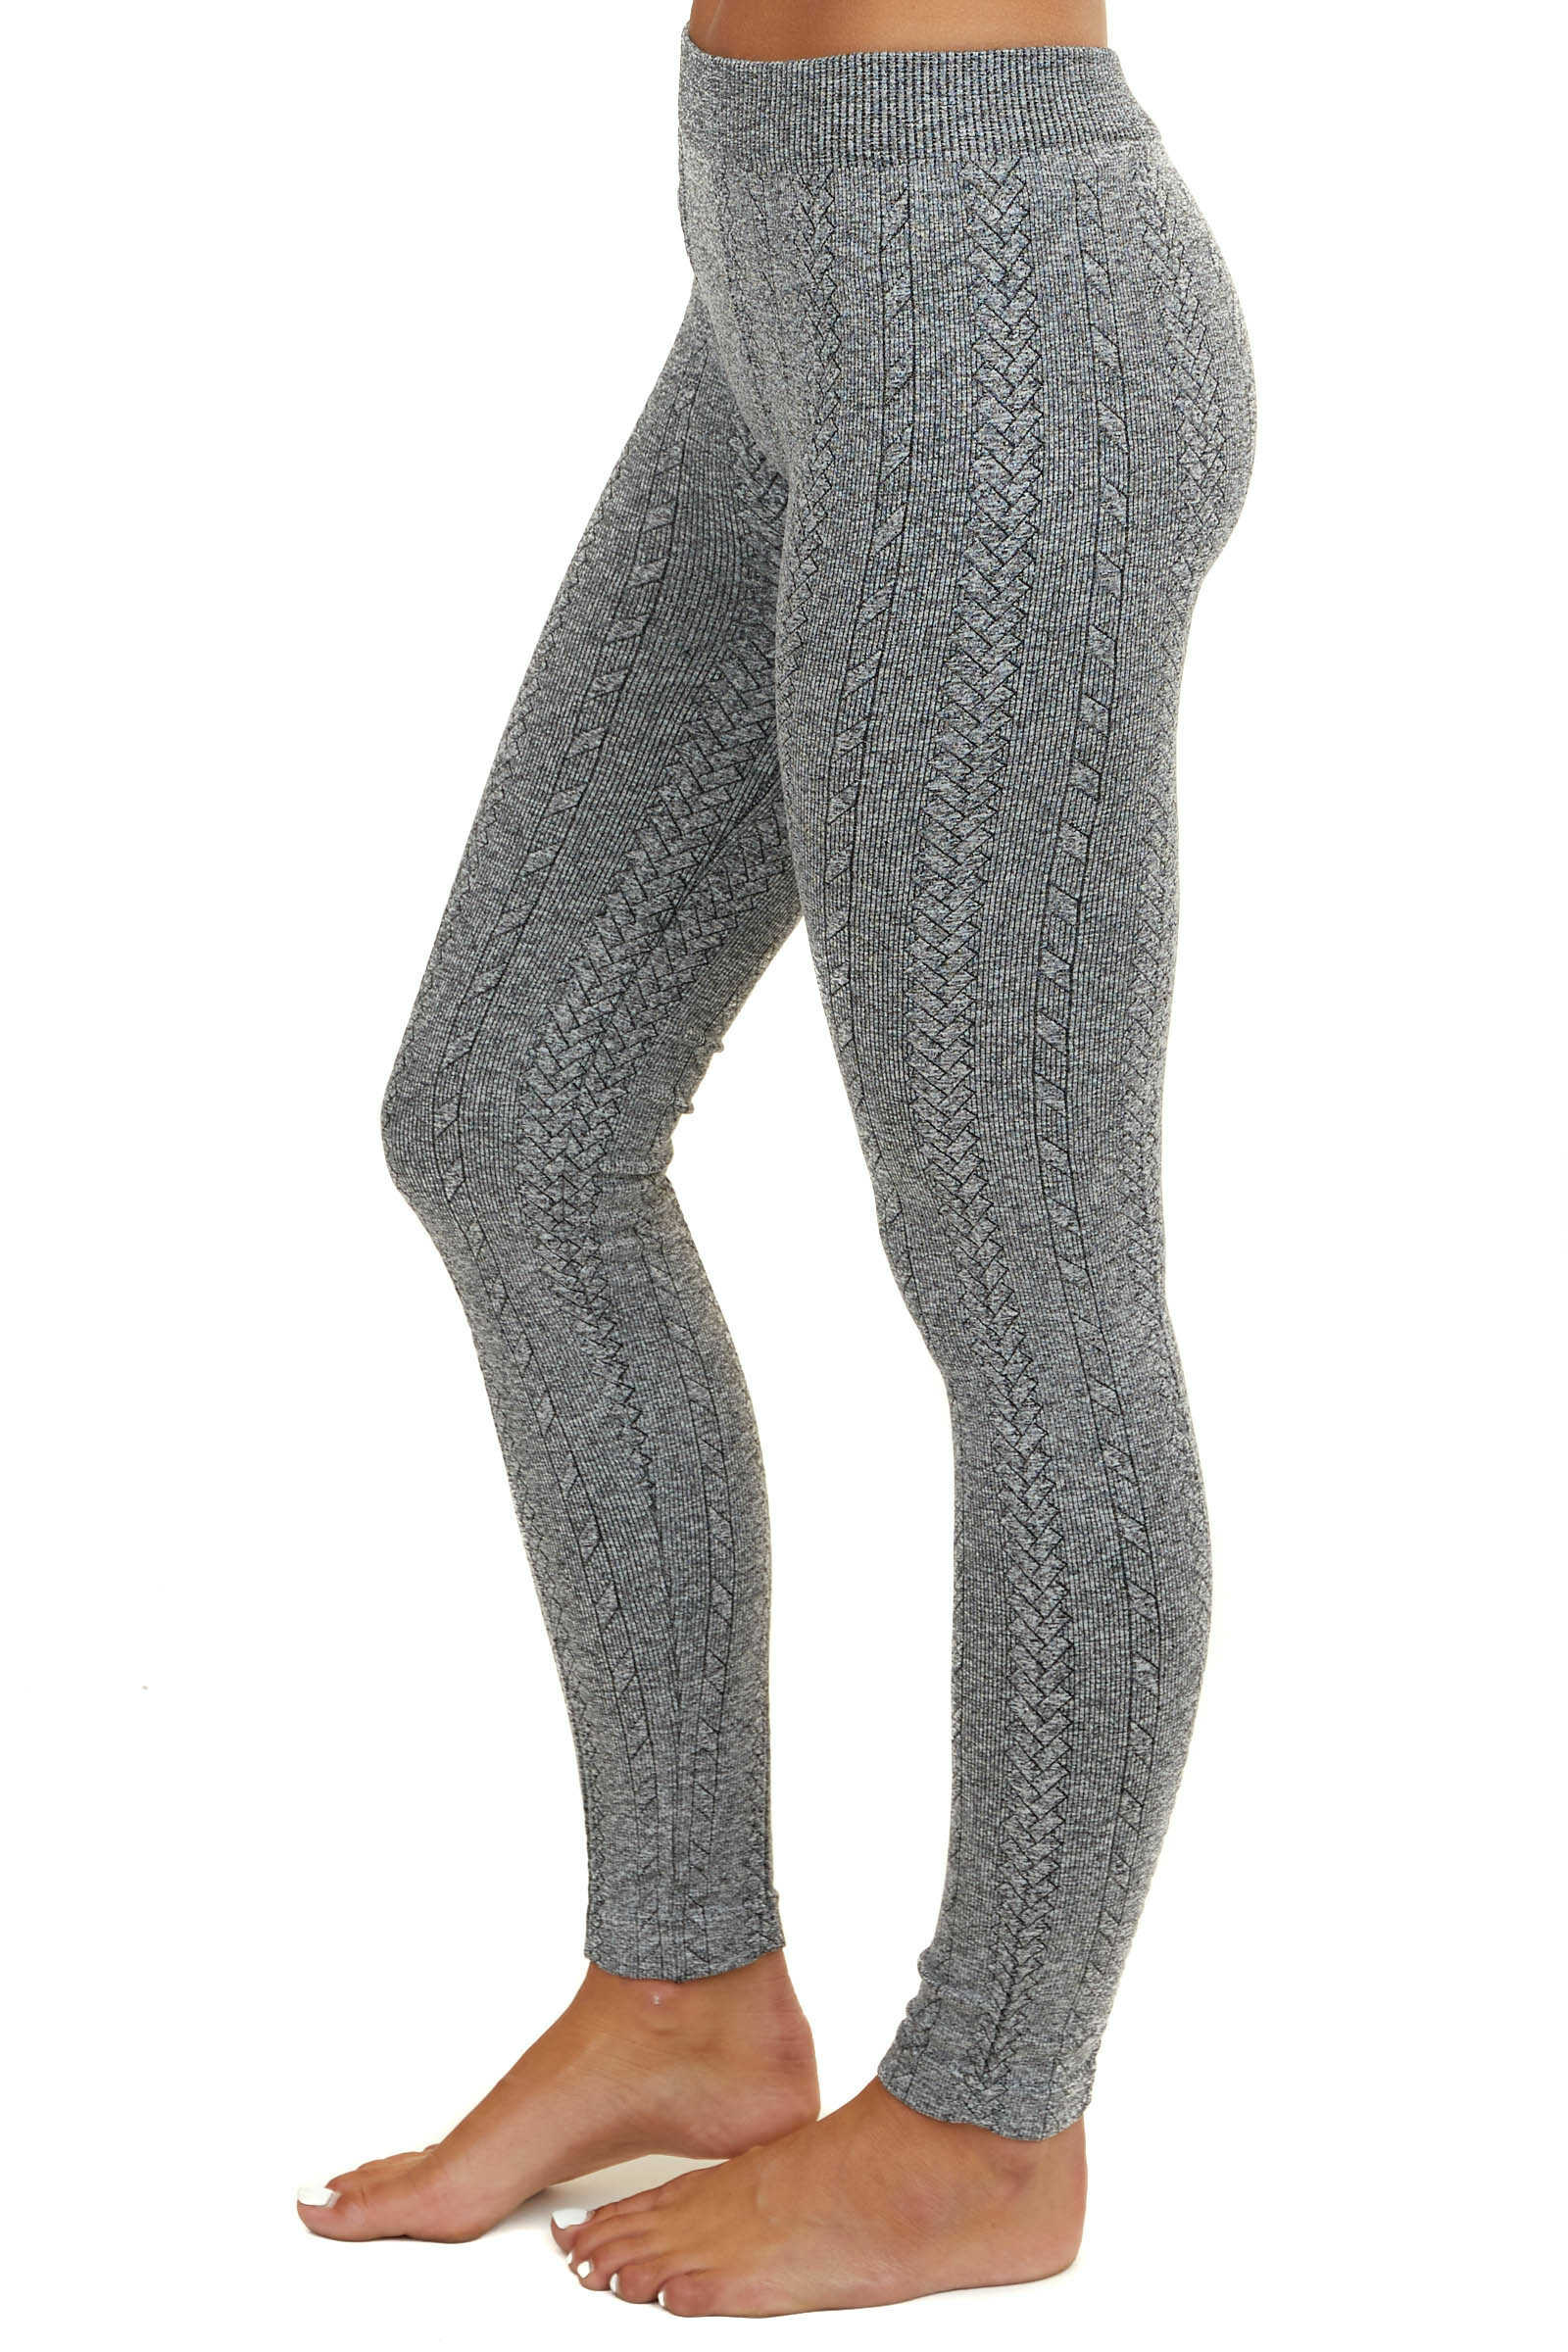 Heathered Charcoal Braided Knit Comfy Leggings